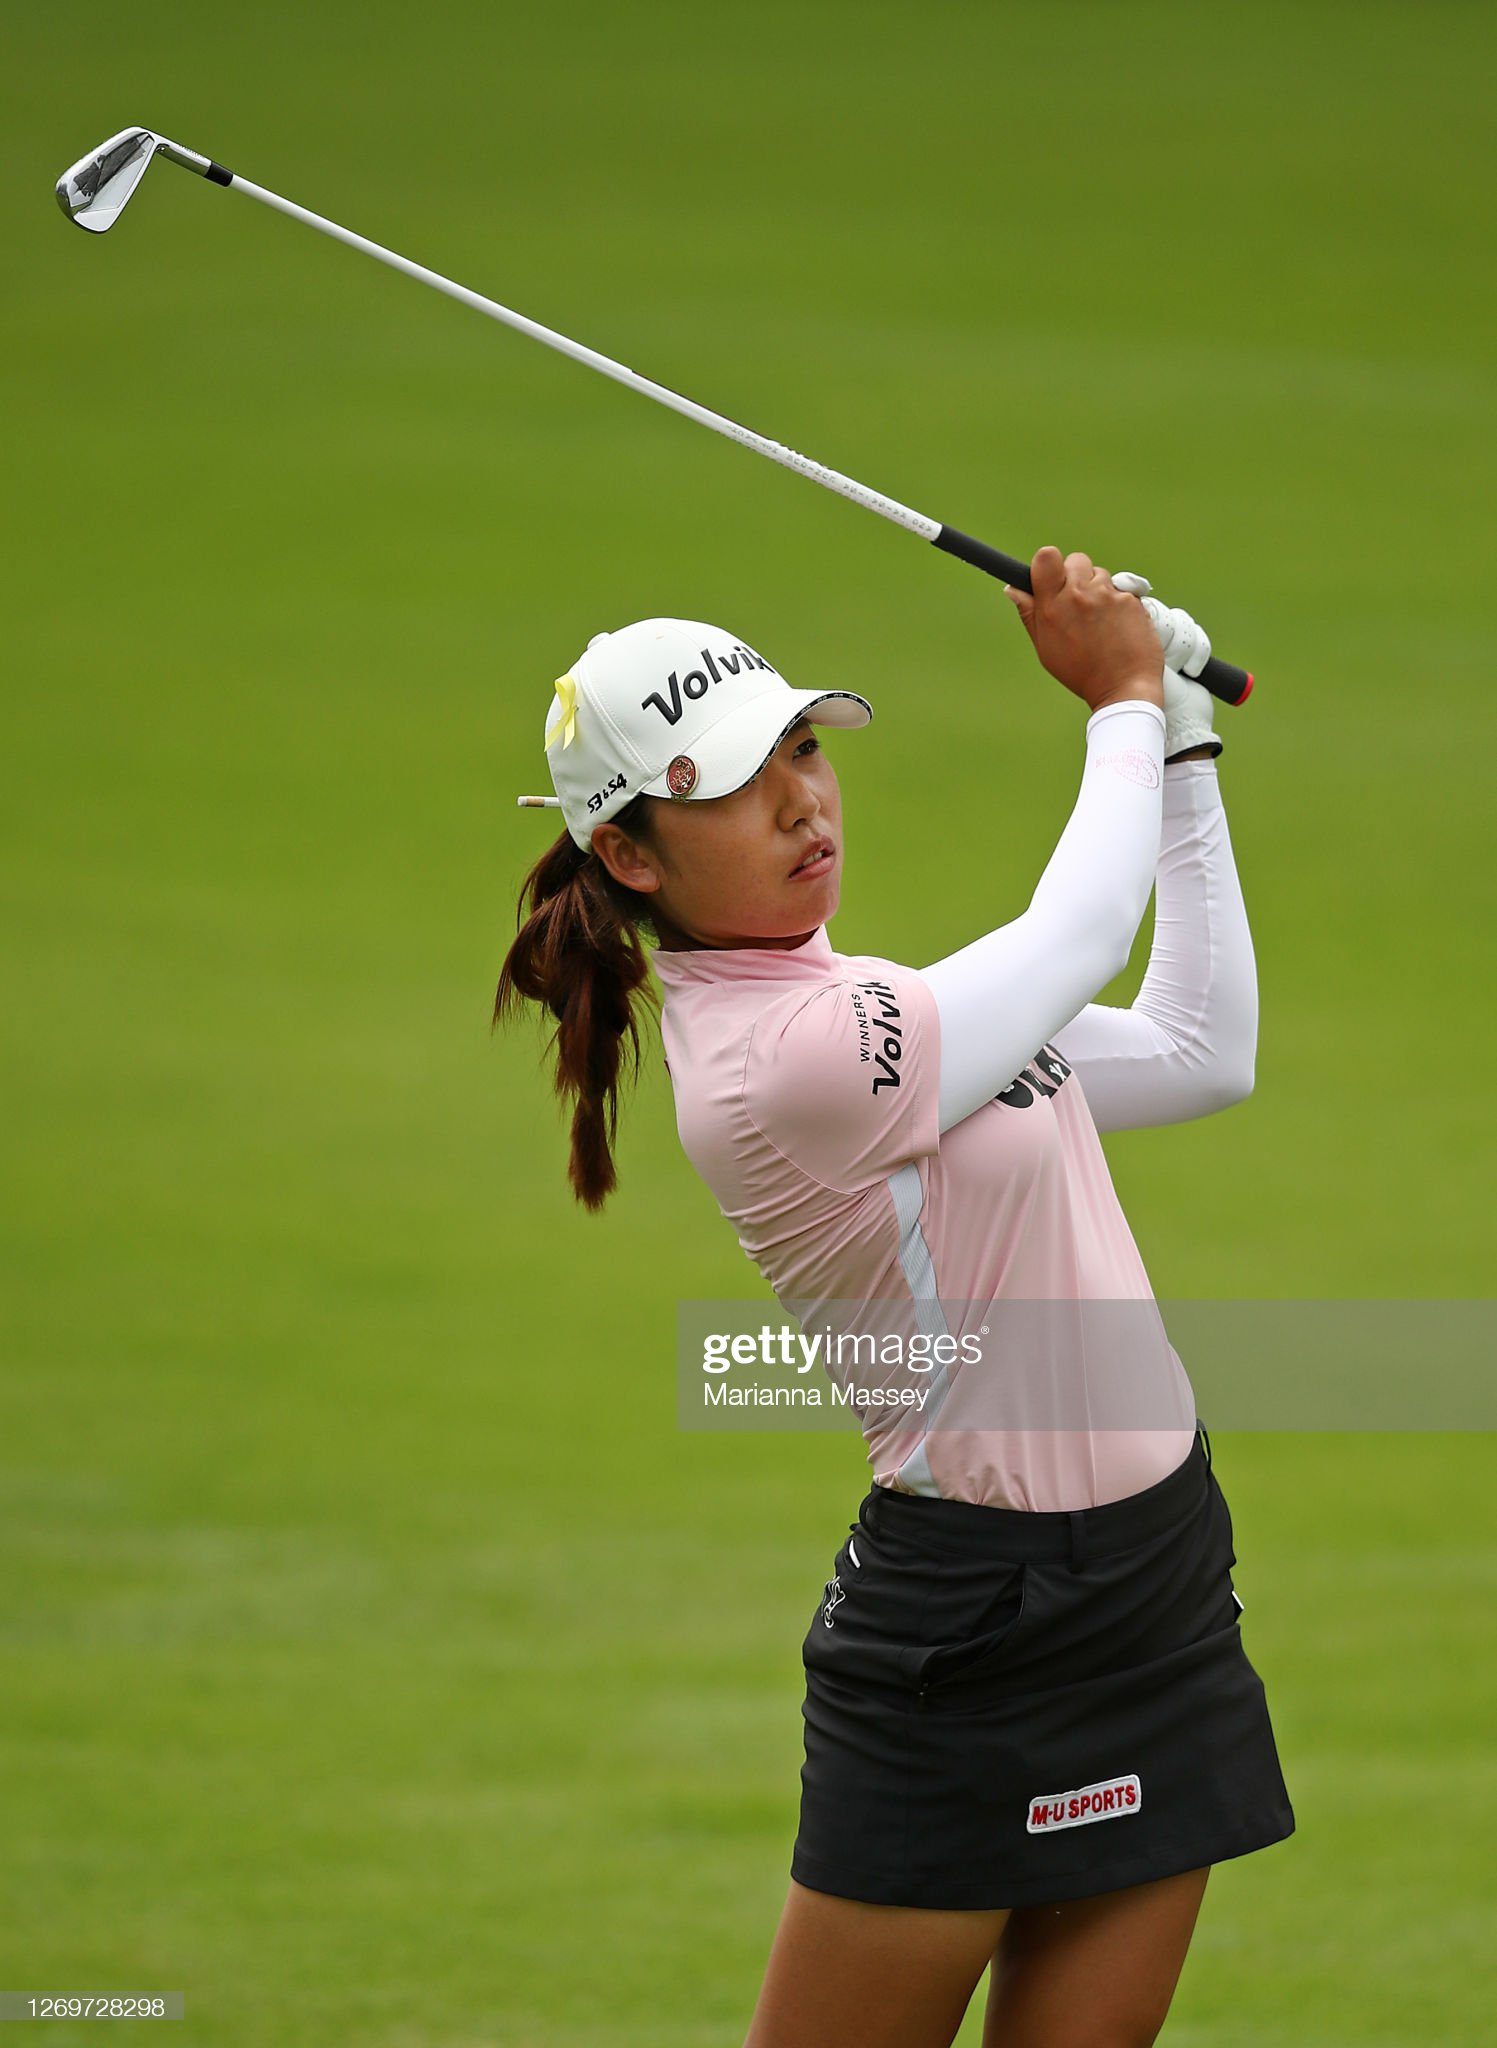 https://media.gettyimages.com/photos/mi-hyang-lee-of-korea-plays-a-shot-on-the-second-hole-during-the-of-picture-id1269728298?s=2048x2048